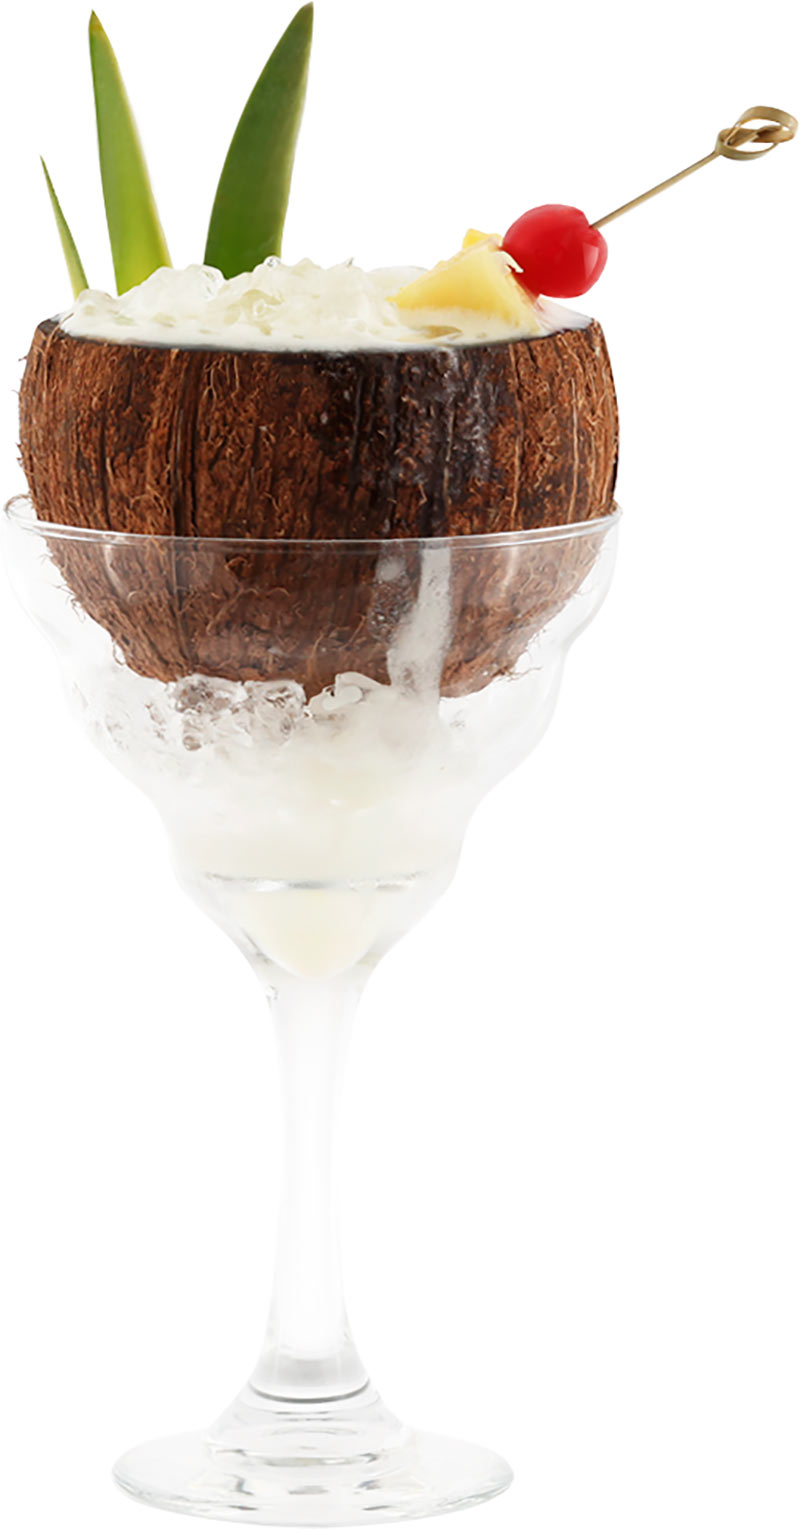 How to Make the Piña Colada in a Coconut